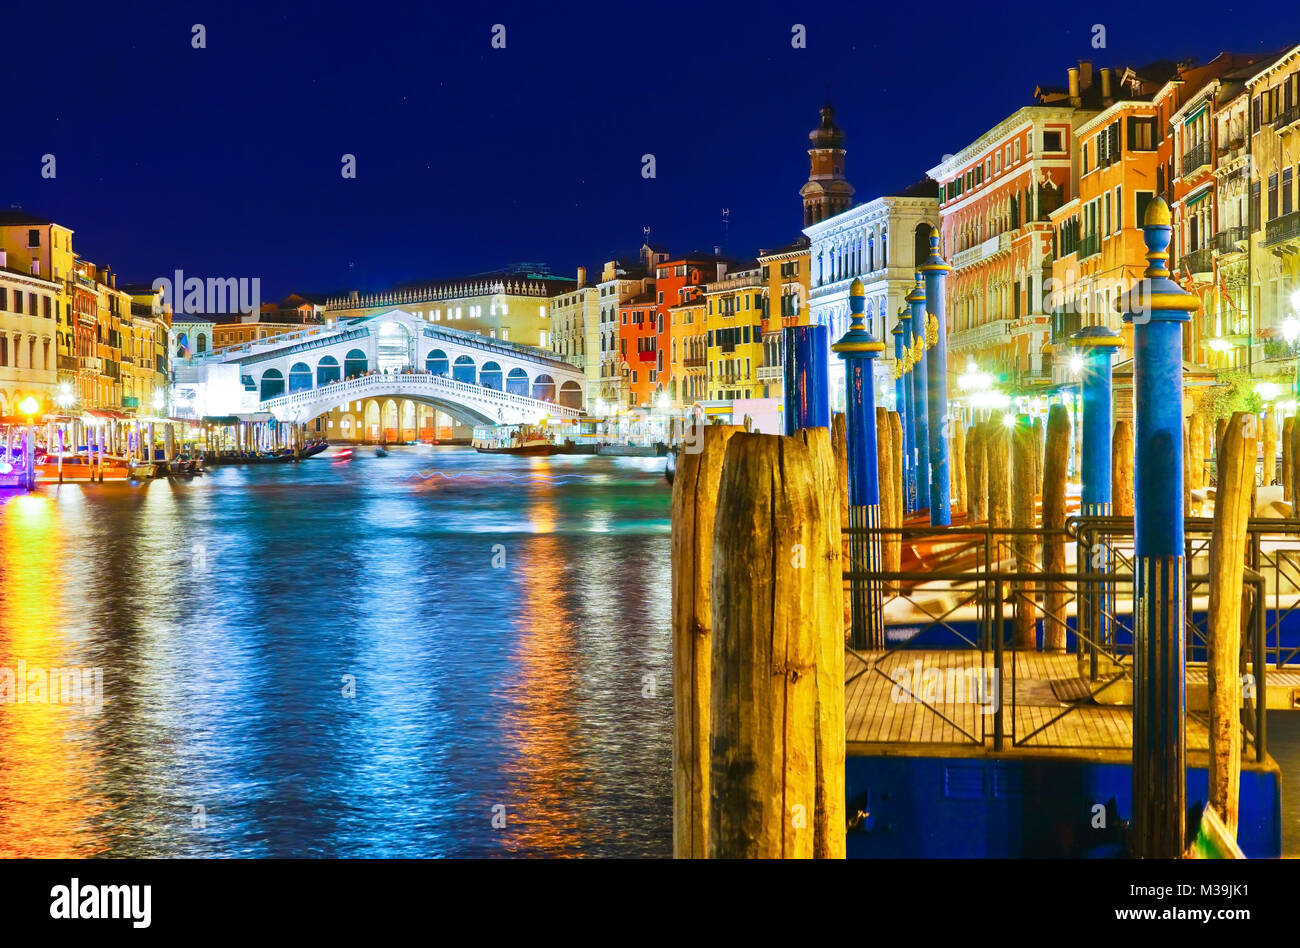 View of the Rialto Bridge and Grand Canal in Venice at night. - Stock Image